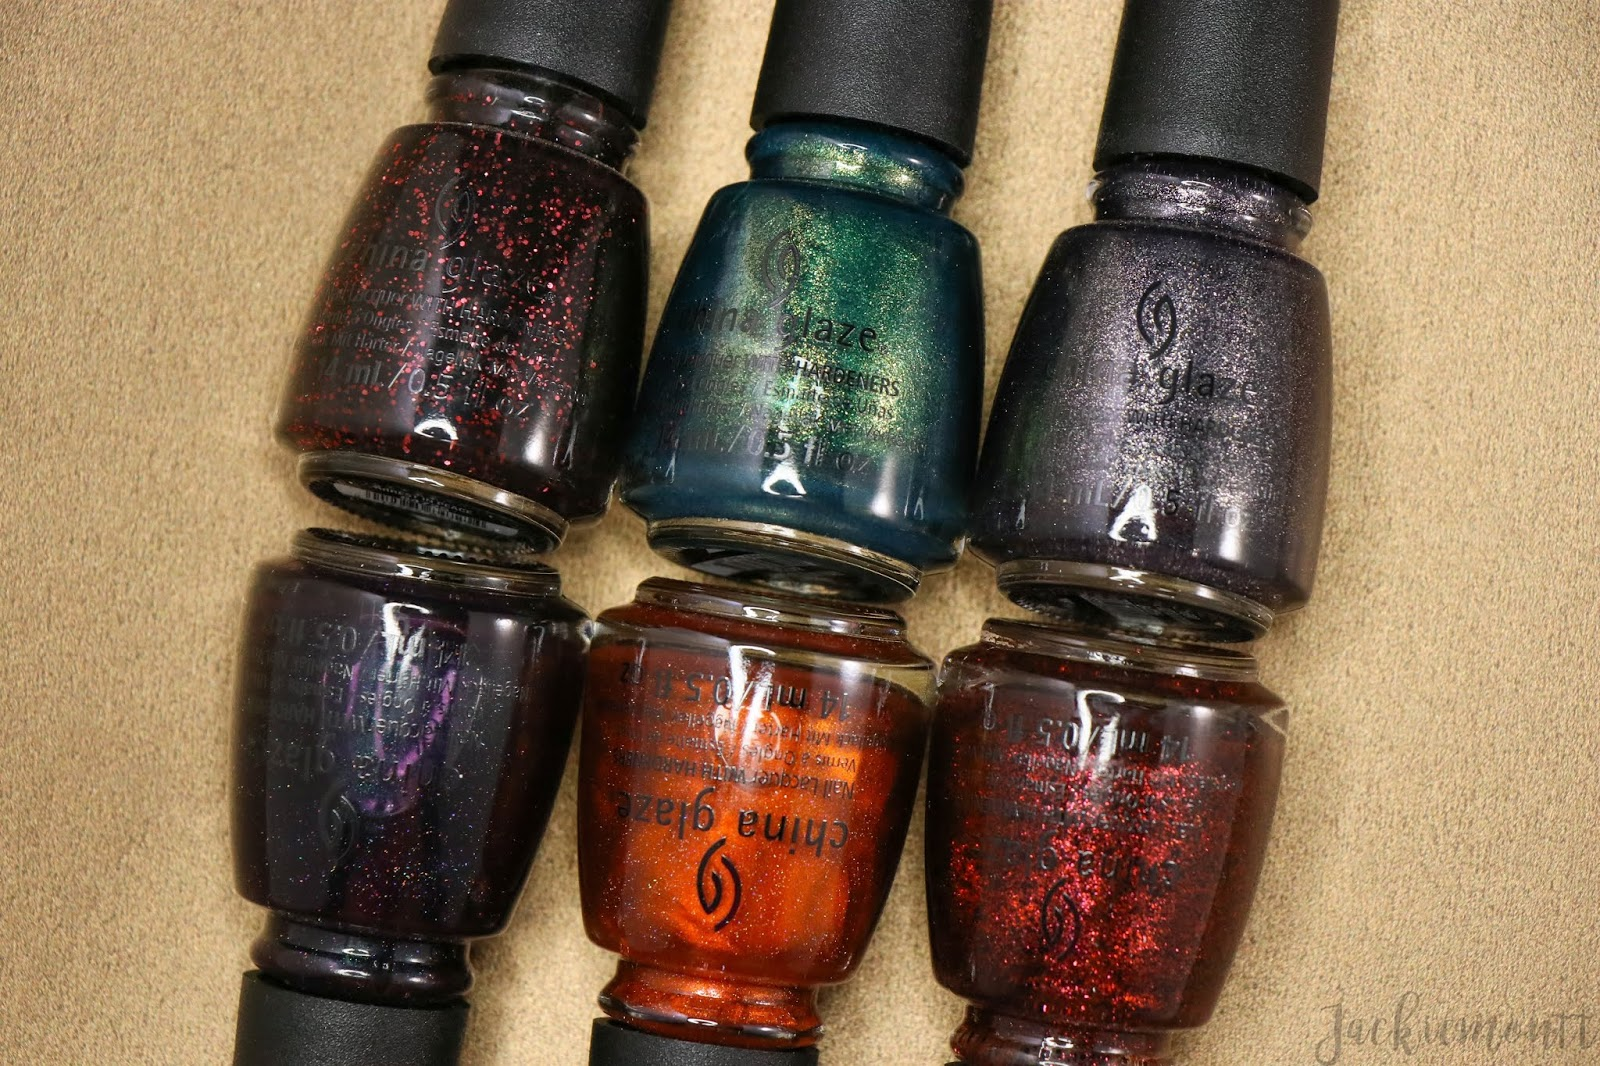 When Does Halloween 2020 Come Out In China China Glaze To Catch A Colour Swatches and Review [Halloween 2019